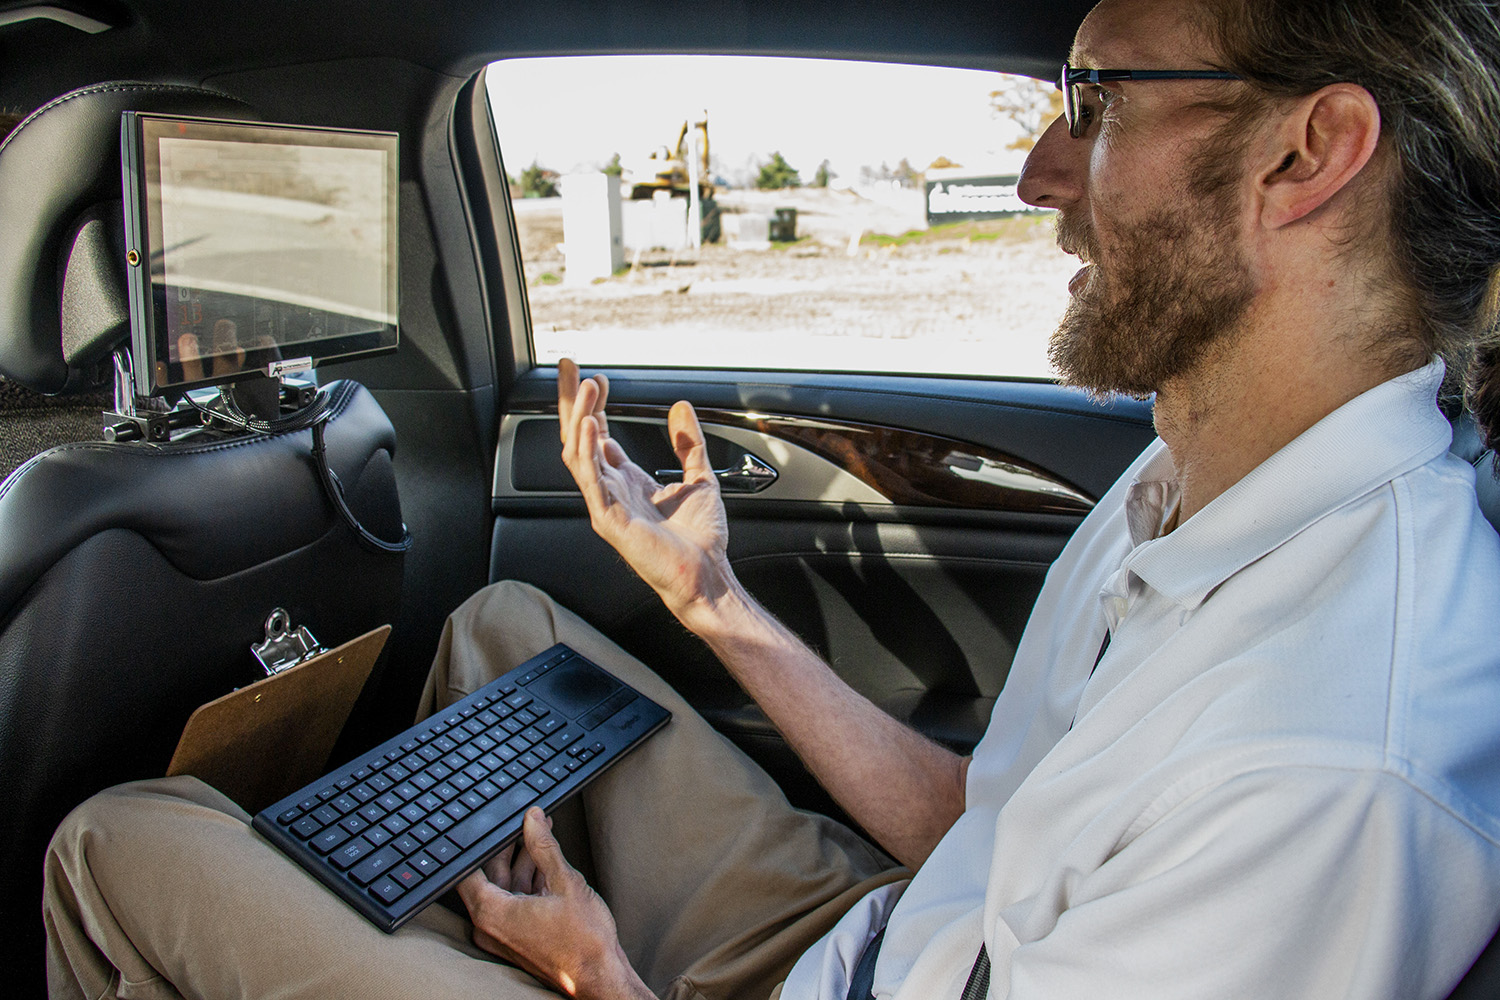 Engineer Steve Cable discusses the functions of the new Lincoln MKZ at The National Advanced Driving Simulator on Wednesday, October 24, 2018. The researchers are creating new softwares to enhance autonomous features in Tesla and Lincoln MKZ. (Katina Zentz/The Daily Iowan)